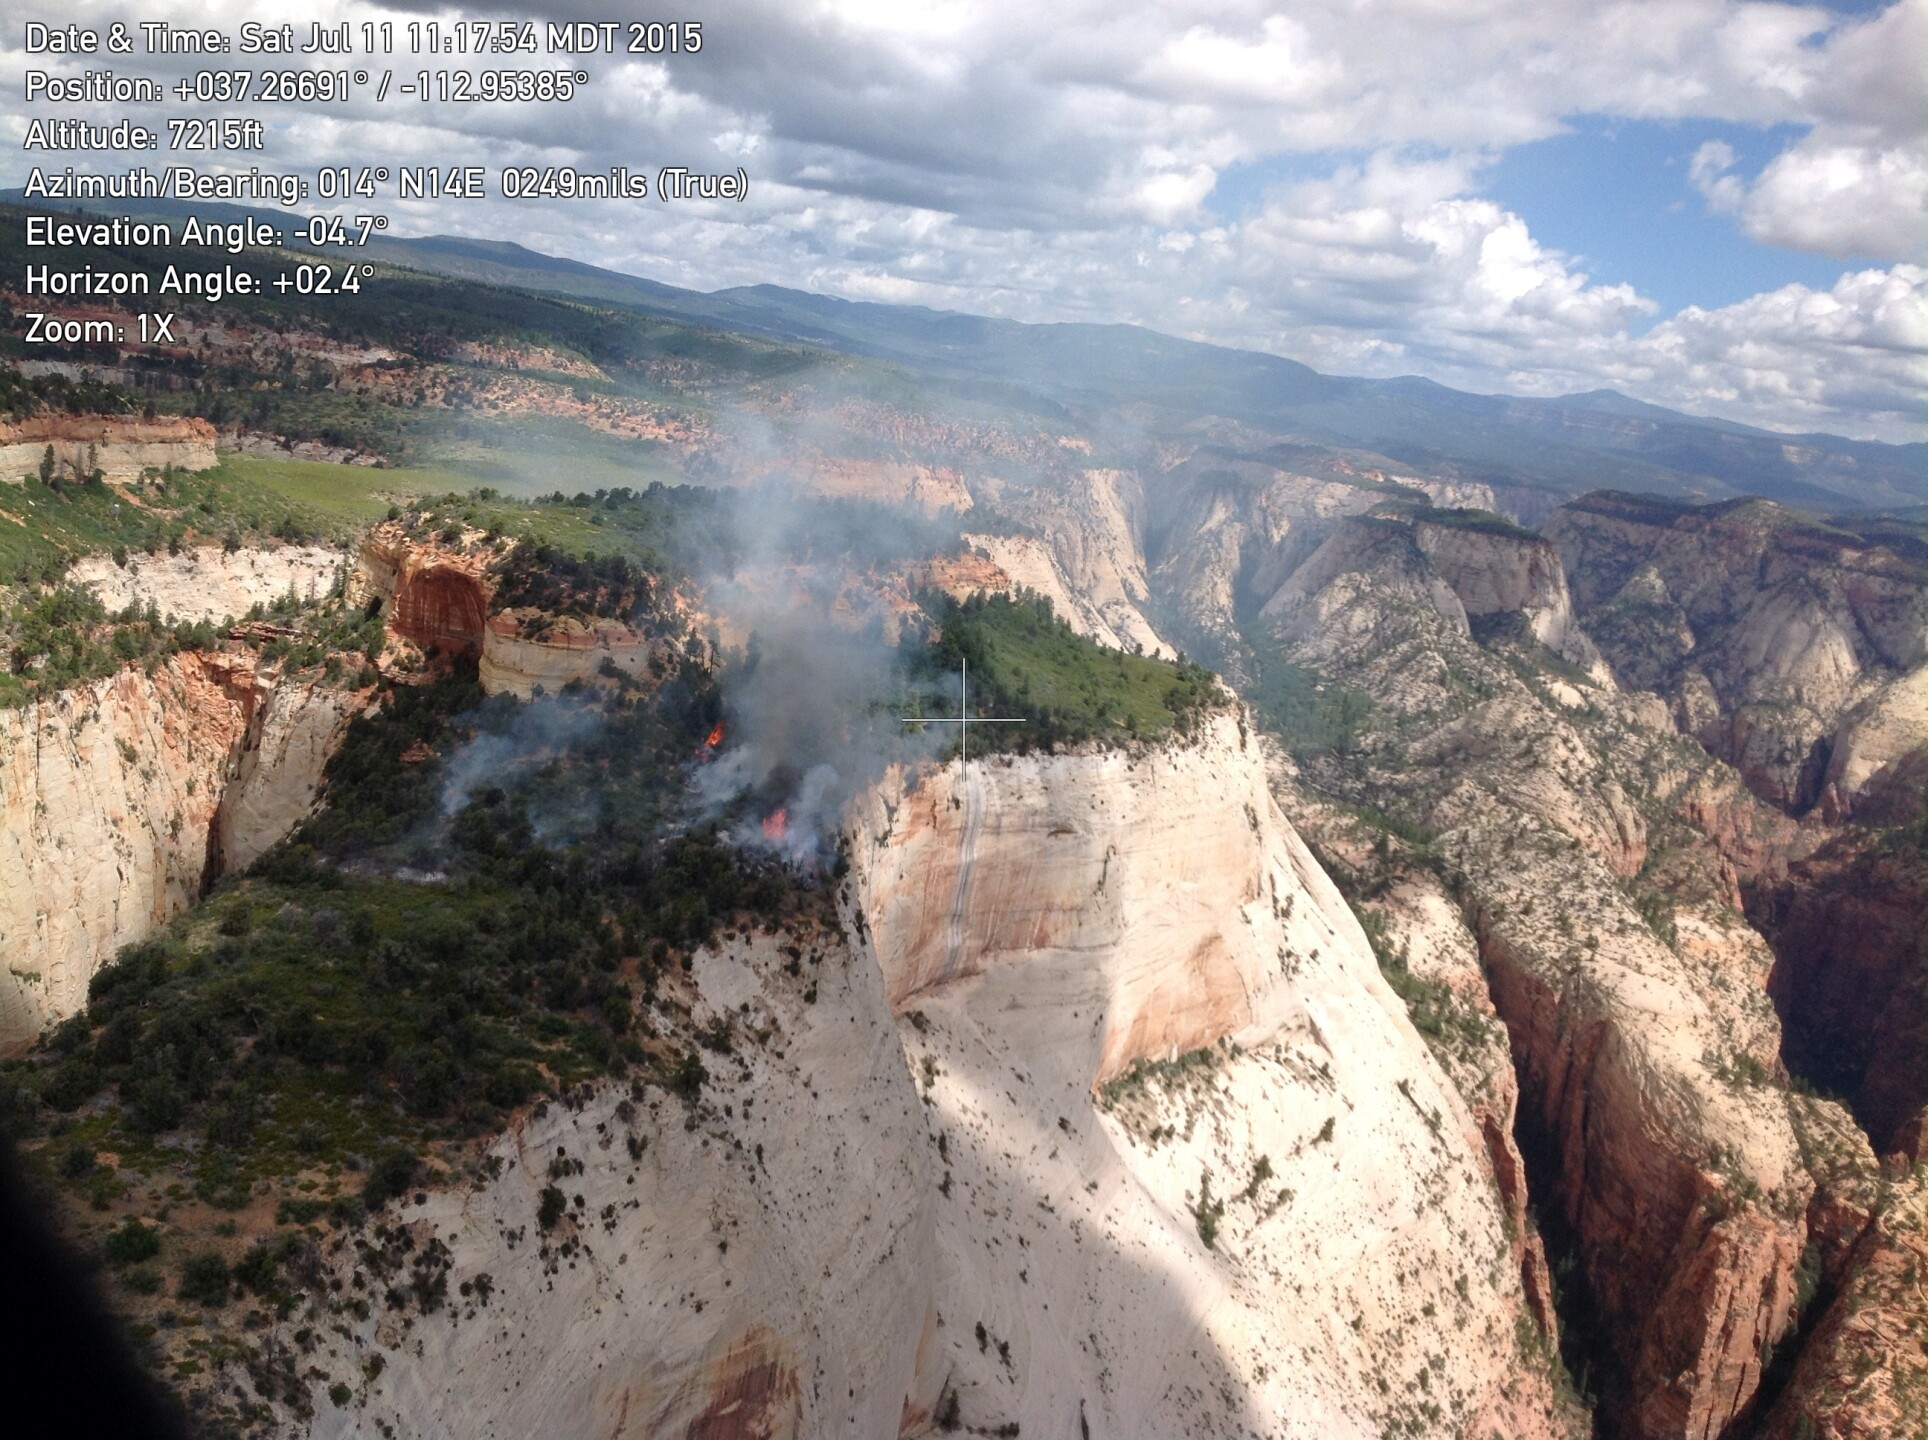 Photos: Lightning sparks wildfire in Zion National Park causing temporary trail closures